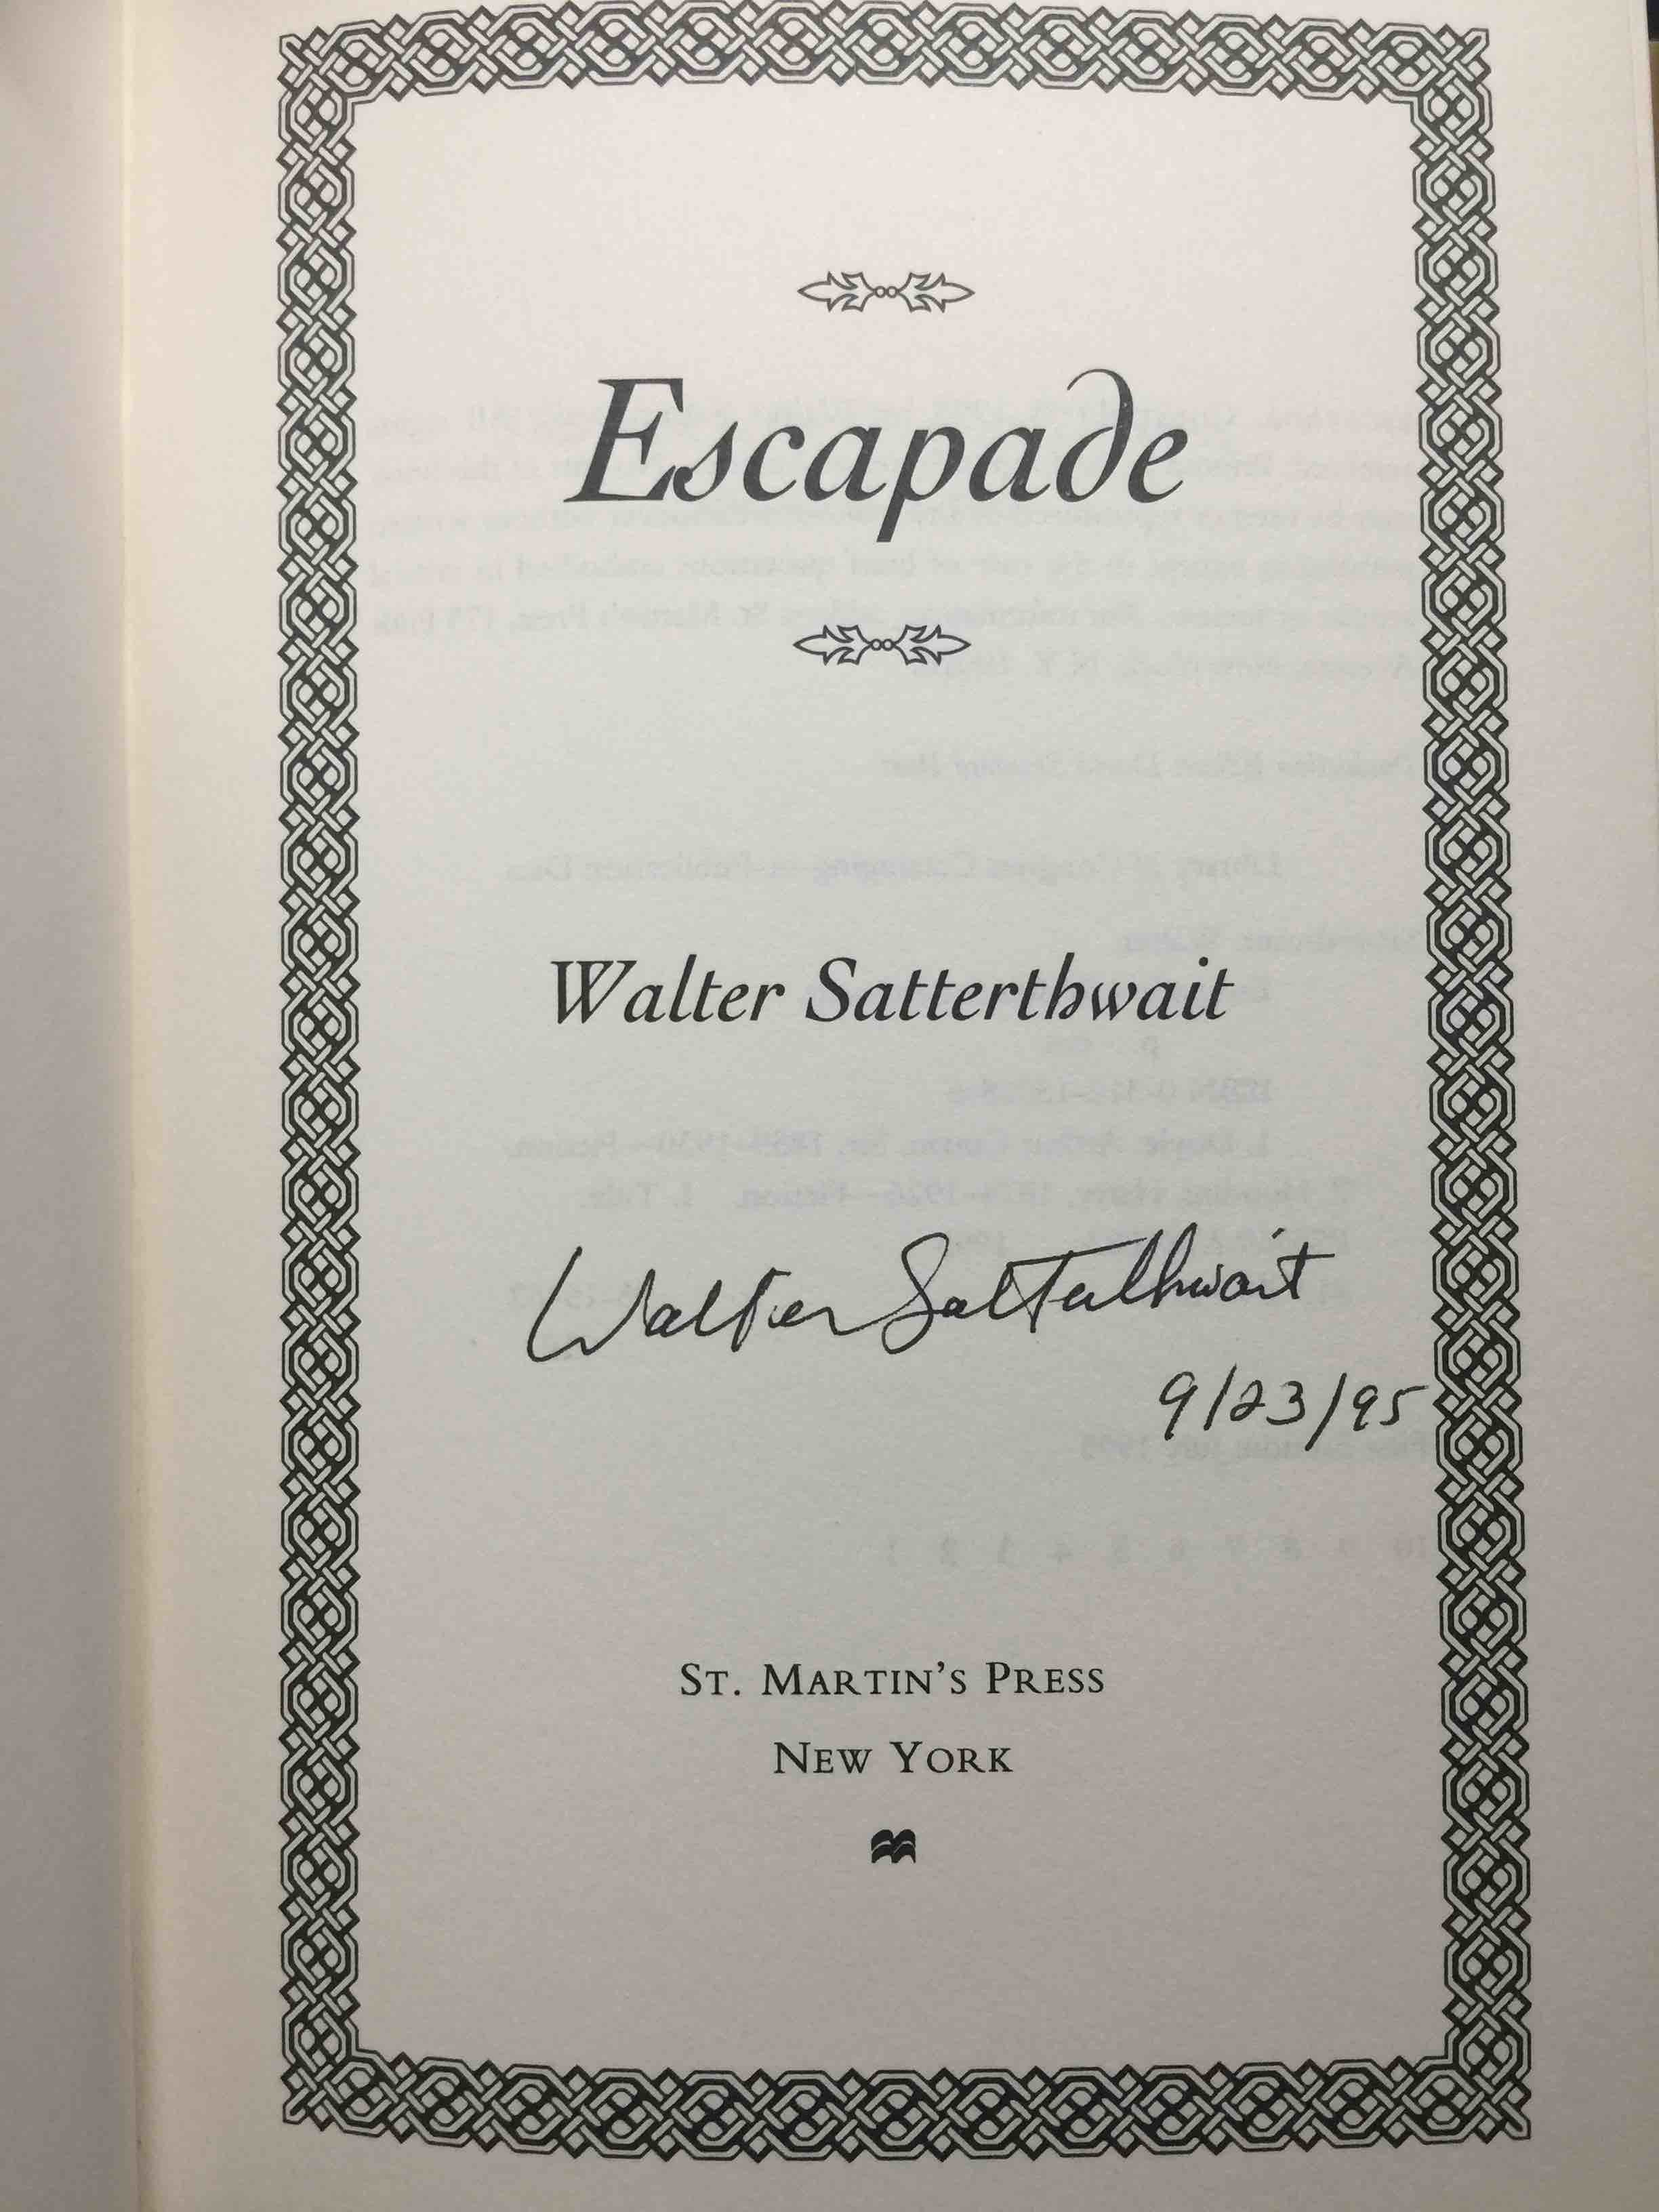 Book cover picture of Satterthwait, Walter. ESCAPADE. New York: St Martin's, (1995.)